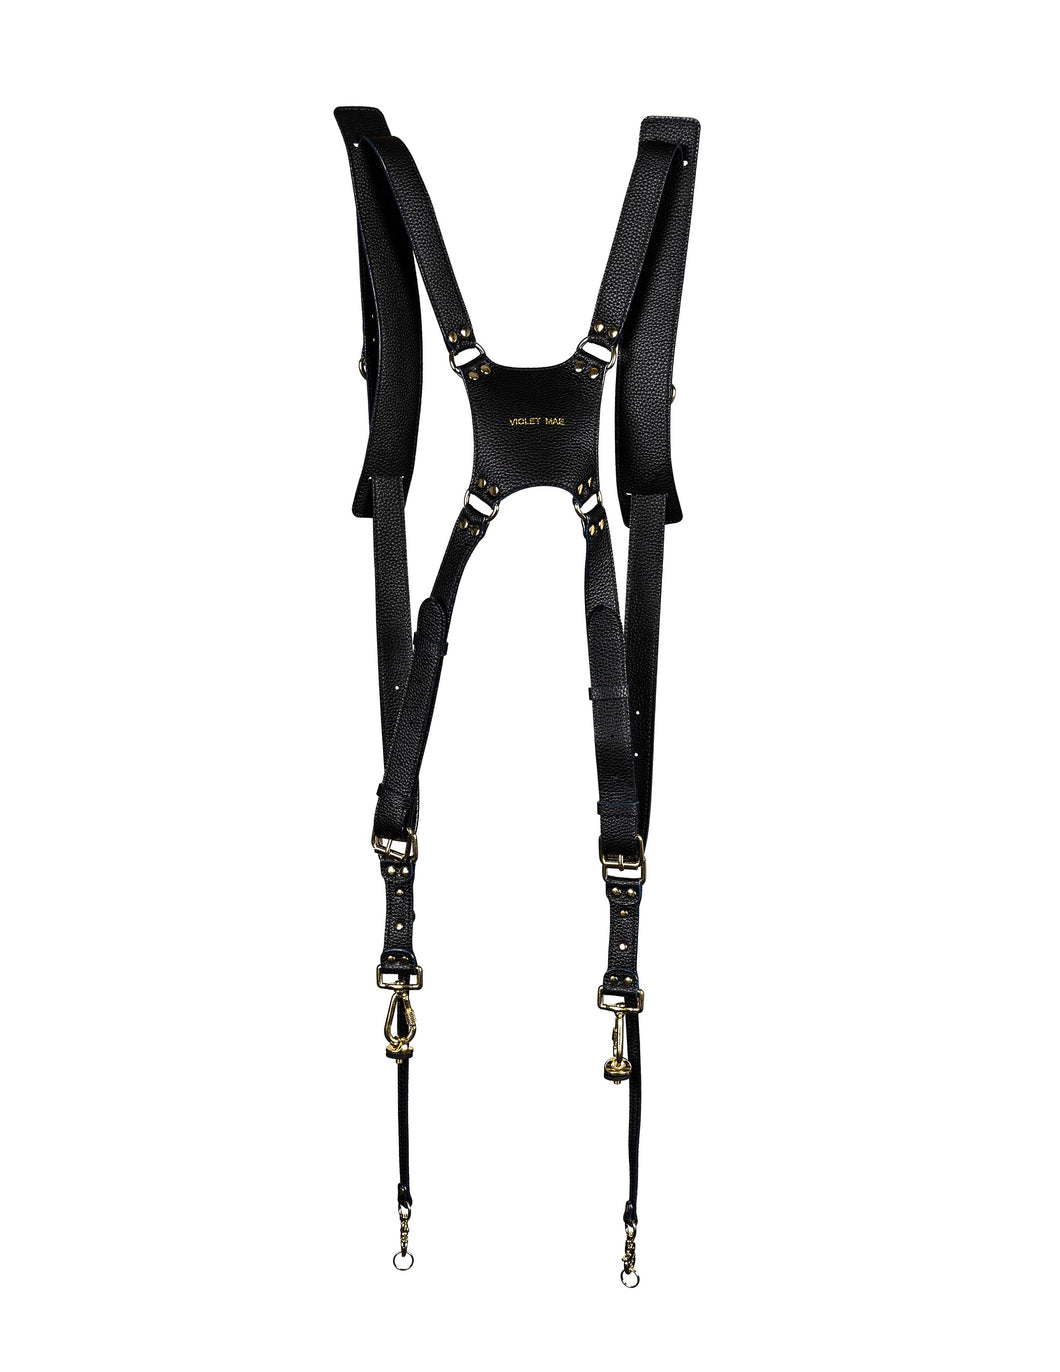 The Leila Dual Camera Harness